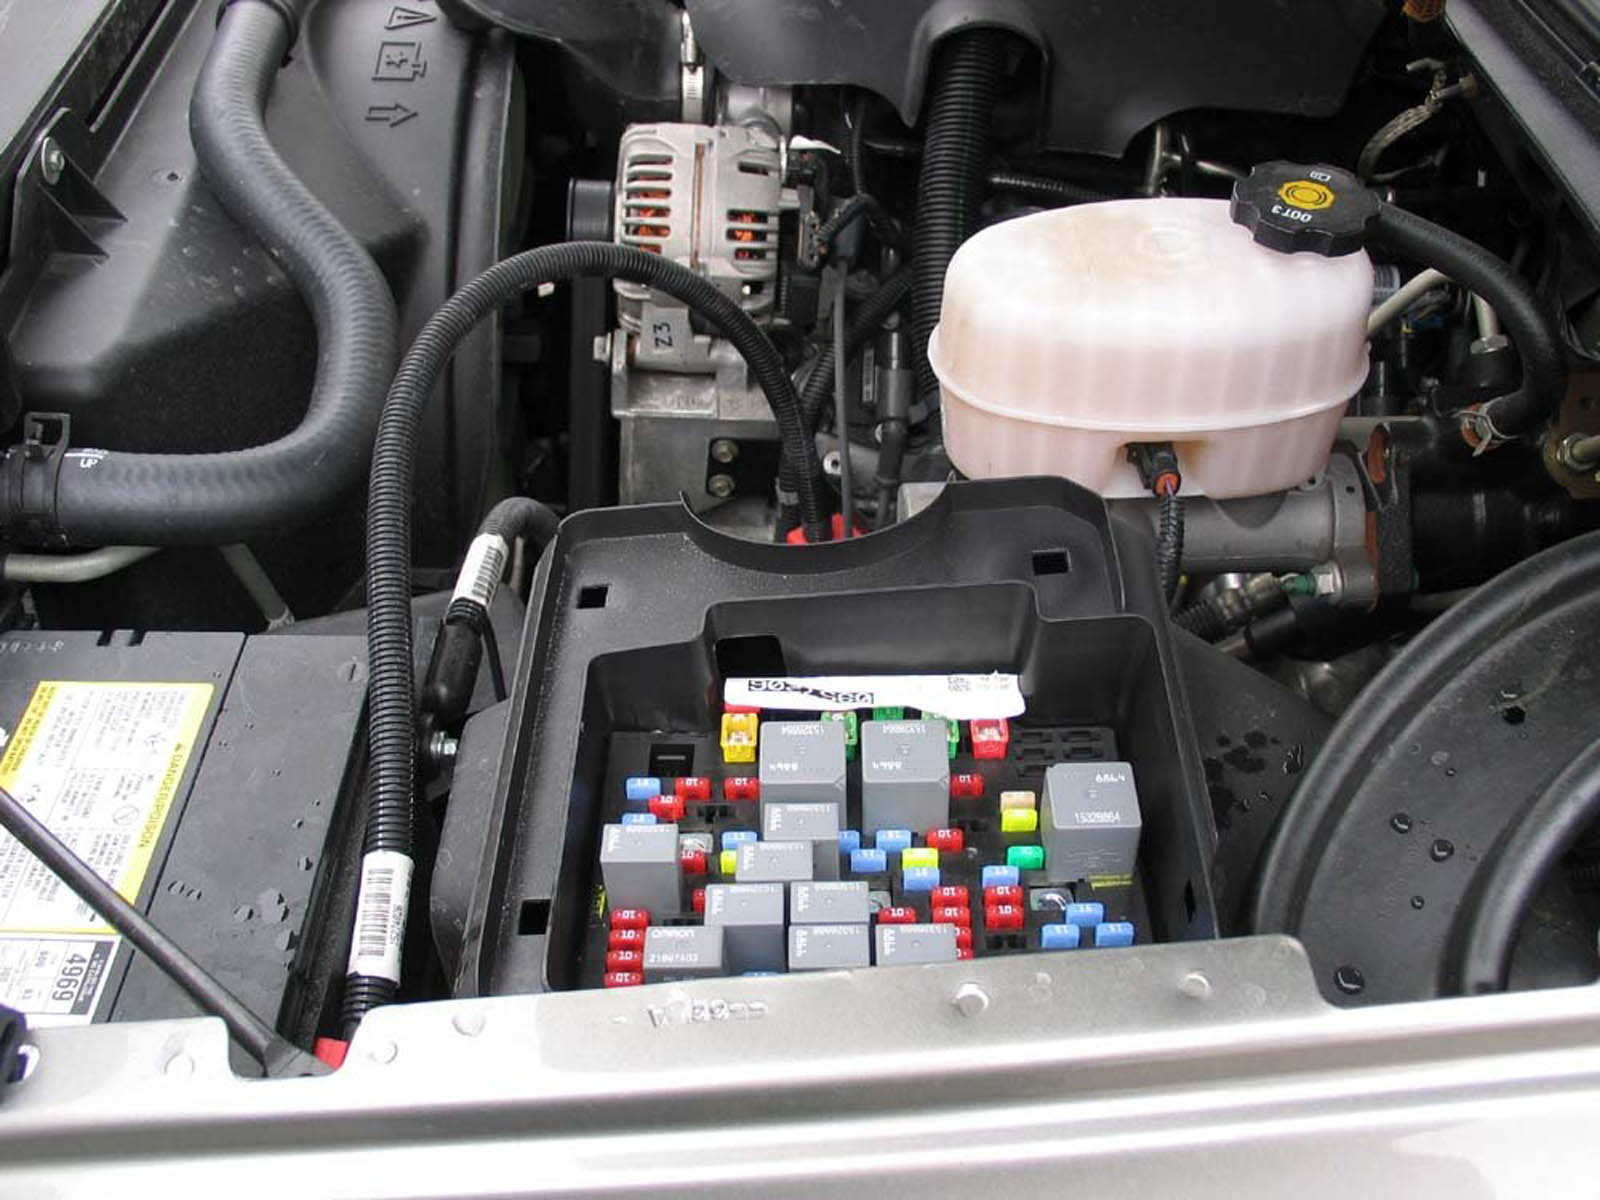 MMMay 27 Fuse Box 04 69845 chevrolet silverado gmt800 1999 2006 fuse box diagram chevroletforum  at edmiracle.co